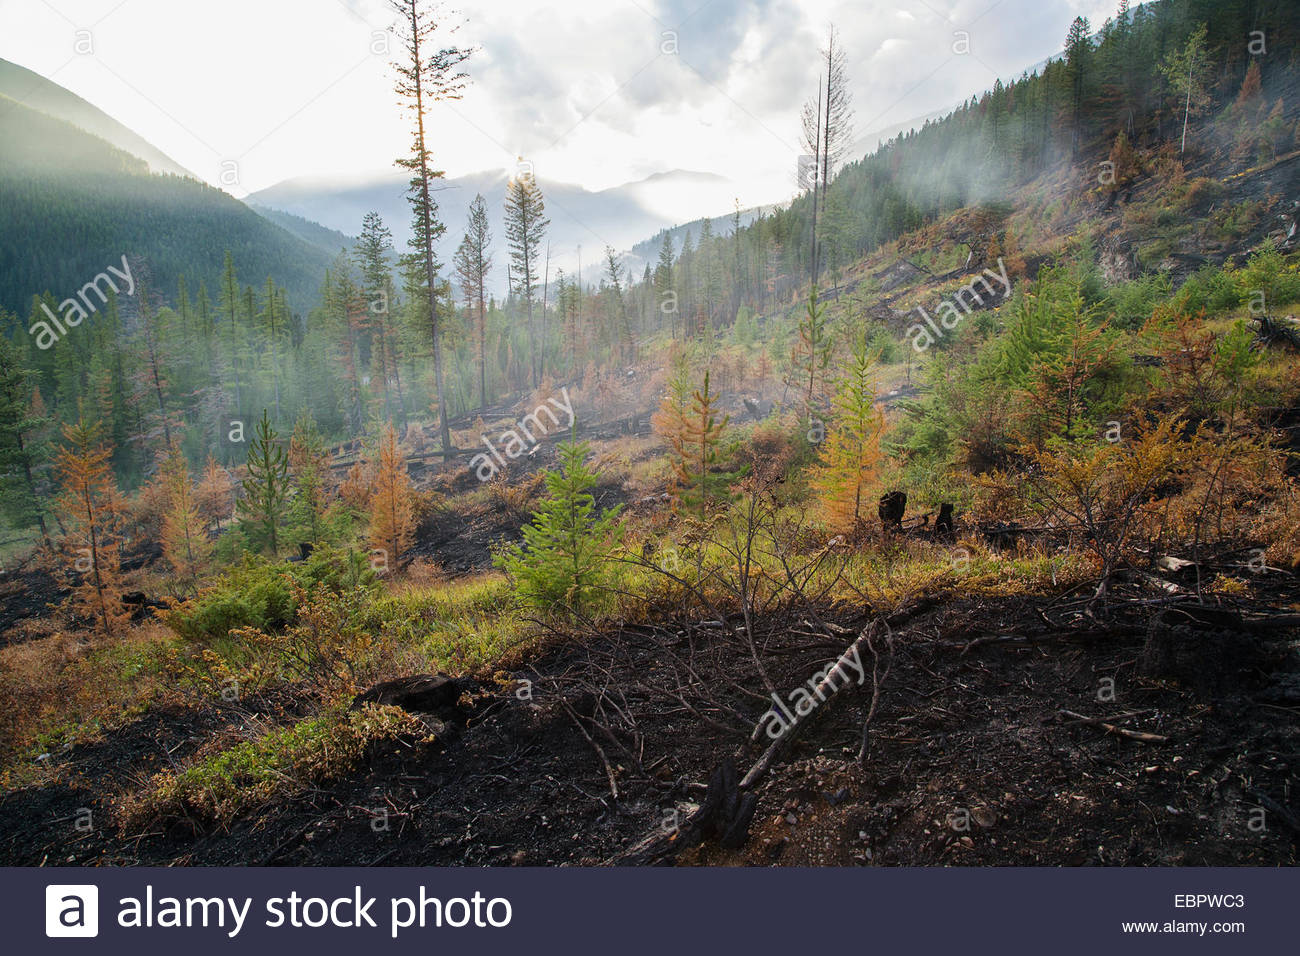 Burnt hillside due to forest fire damage - Stock Image